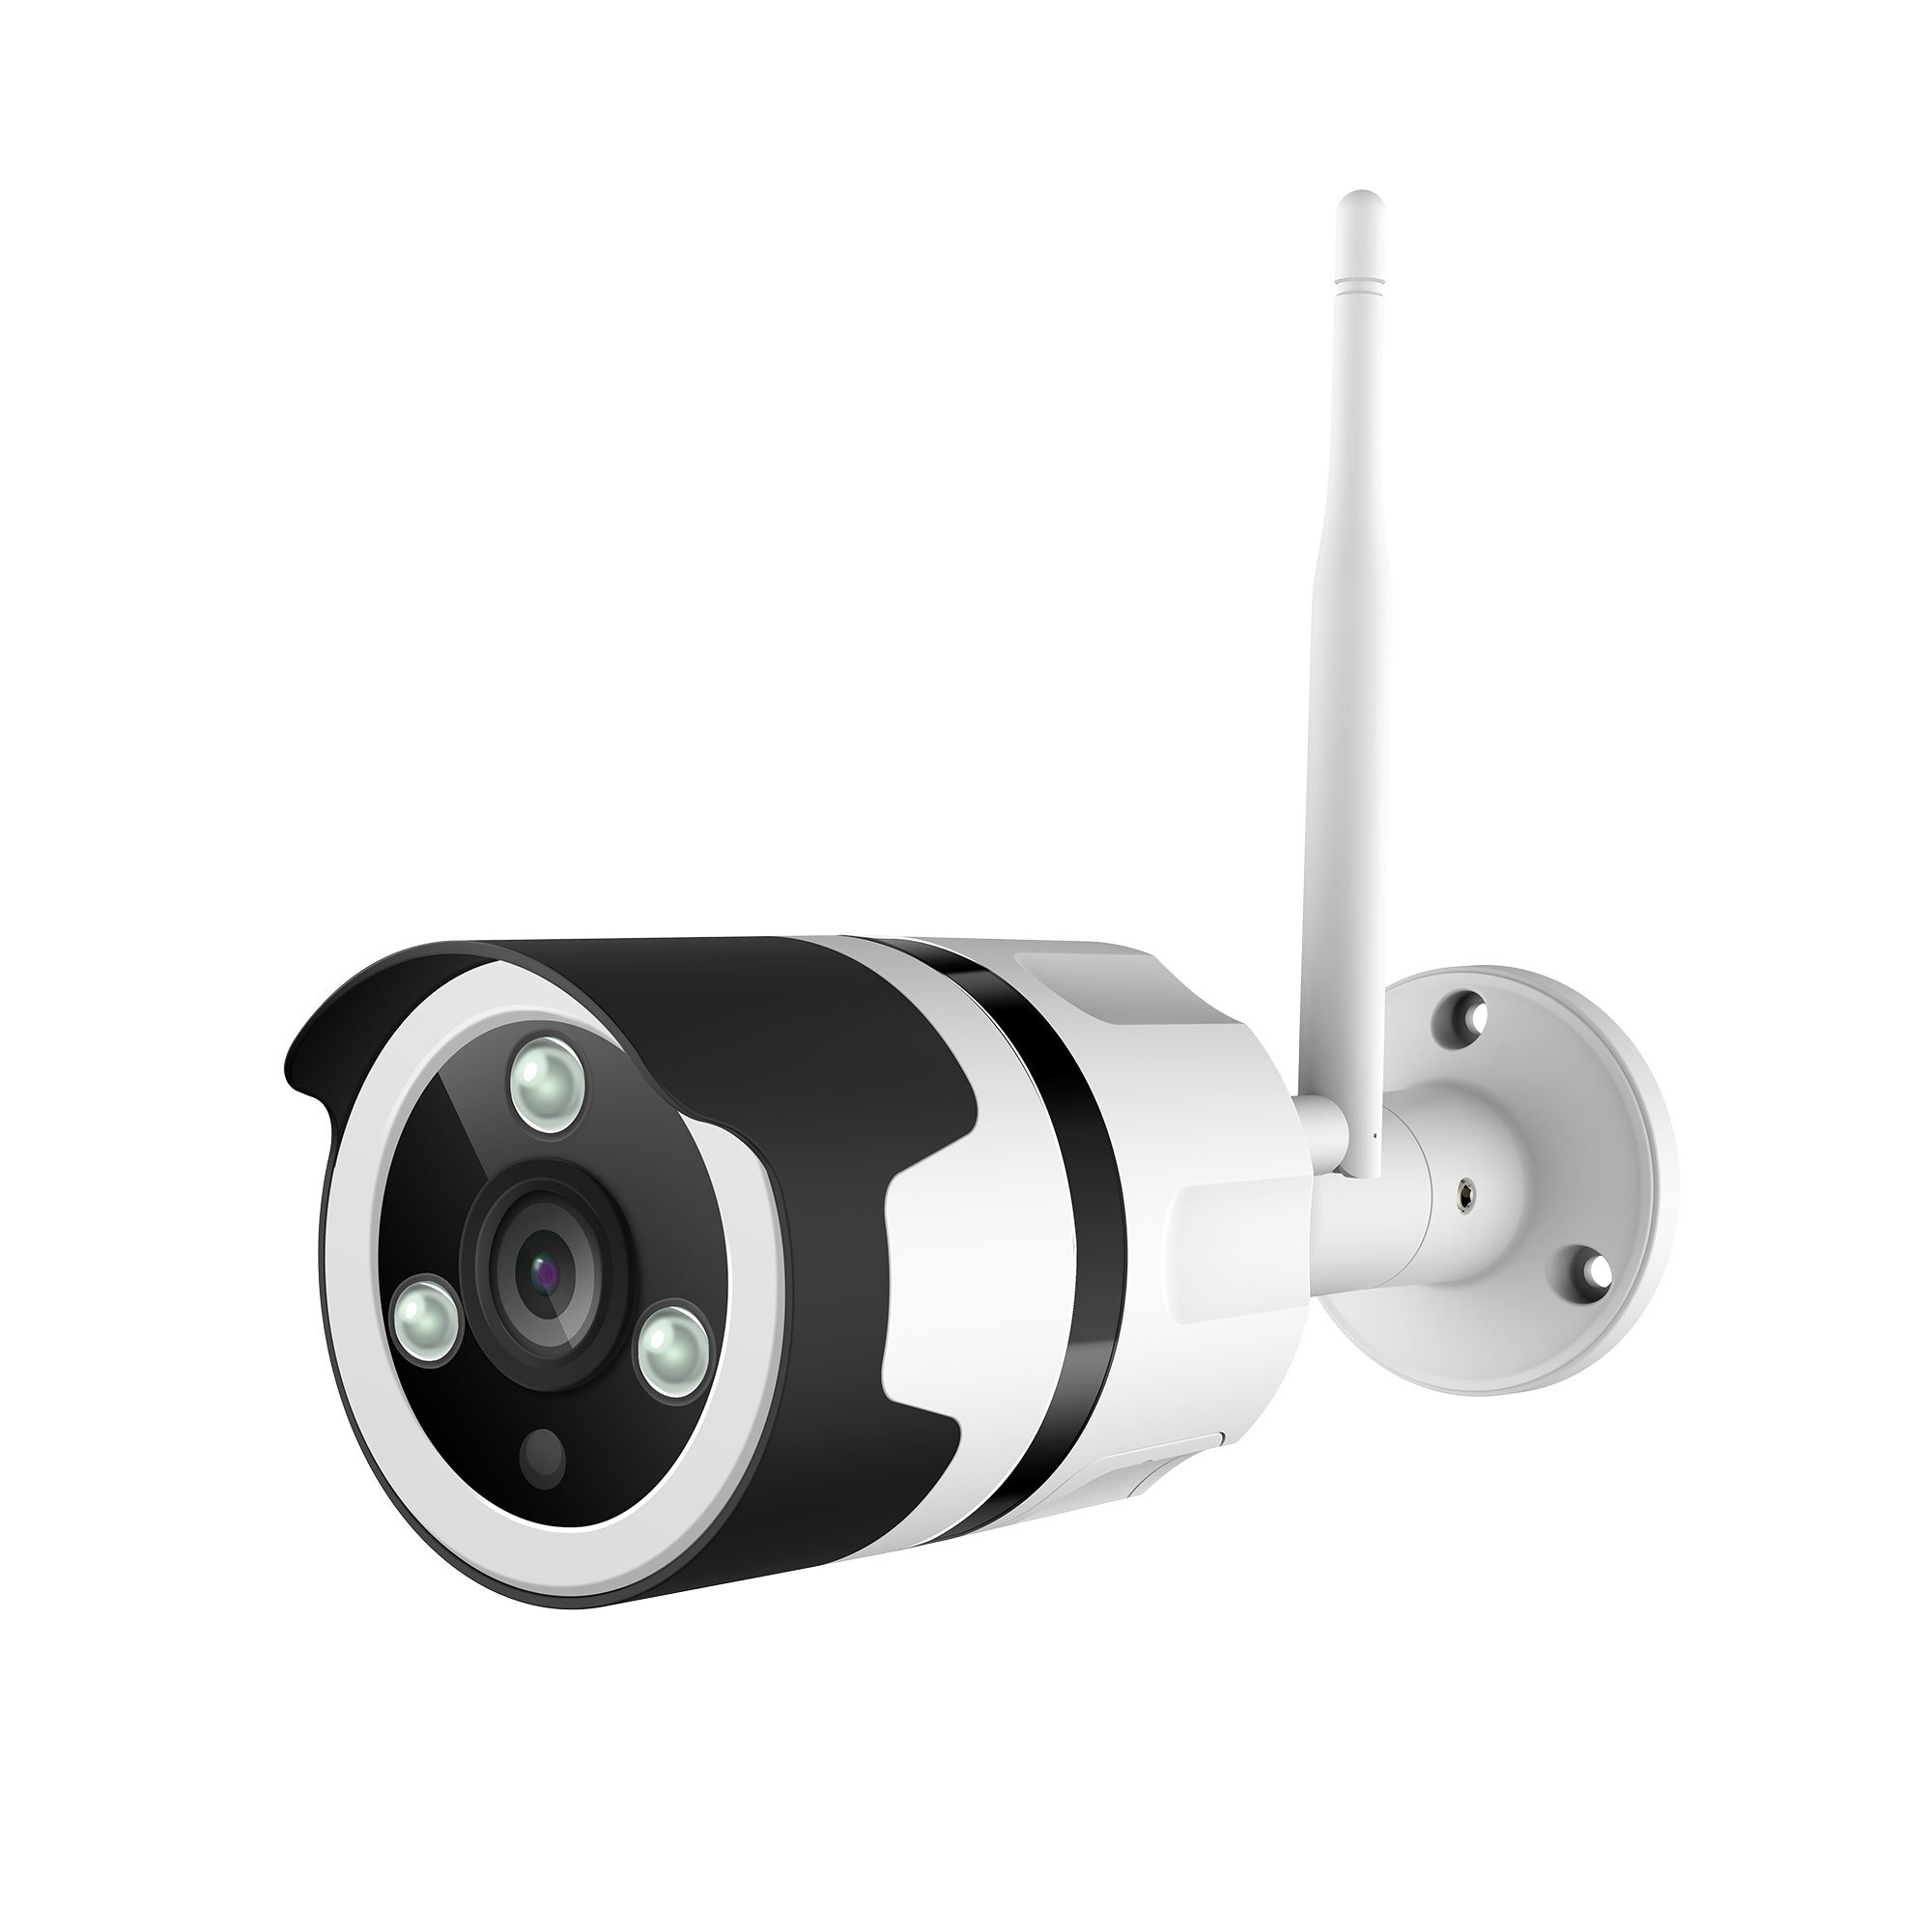 NETVUE Outdoor Security Camera 1080P Waterproof Wireless WiFi Bullet Camera IR Night Vision Survinence System Works with…